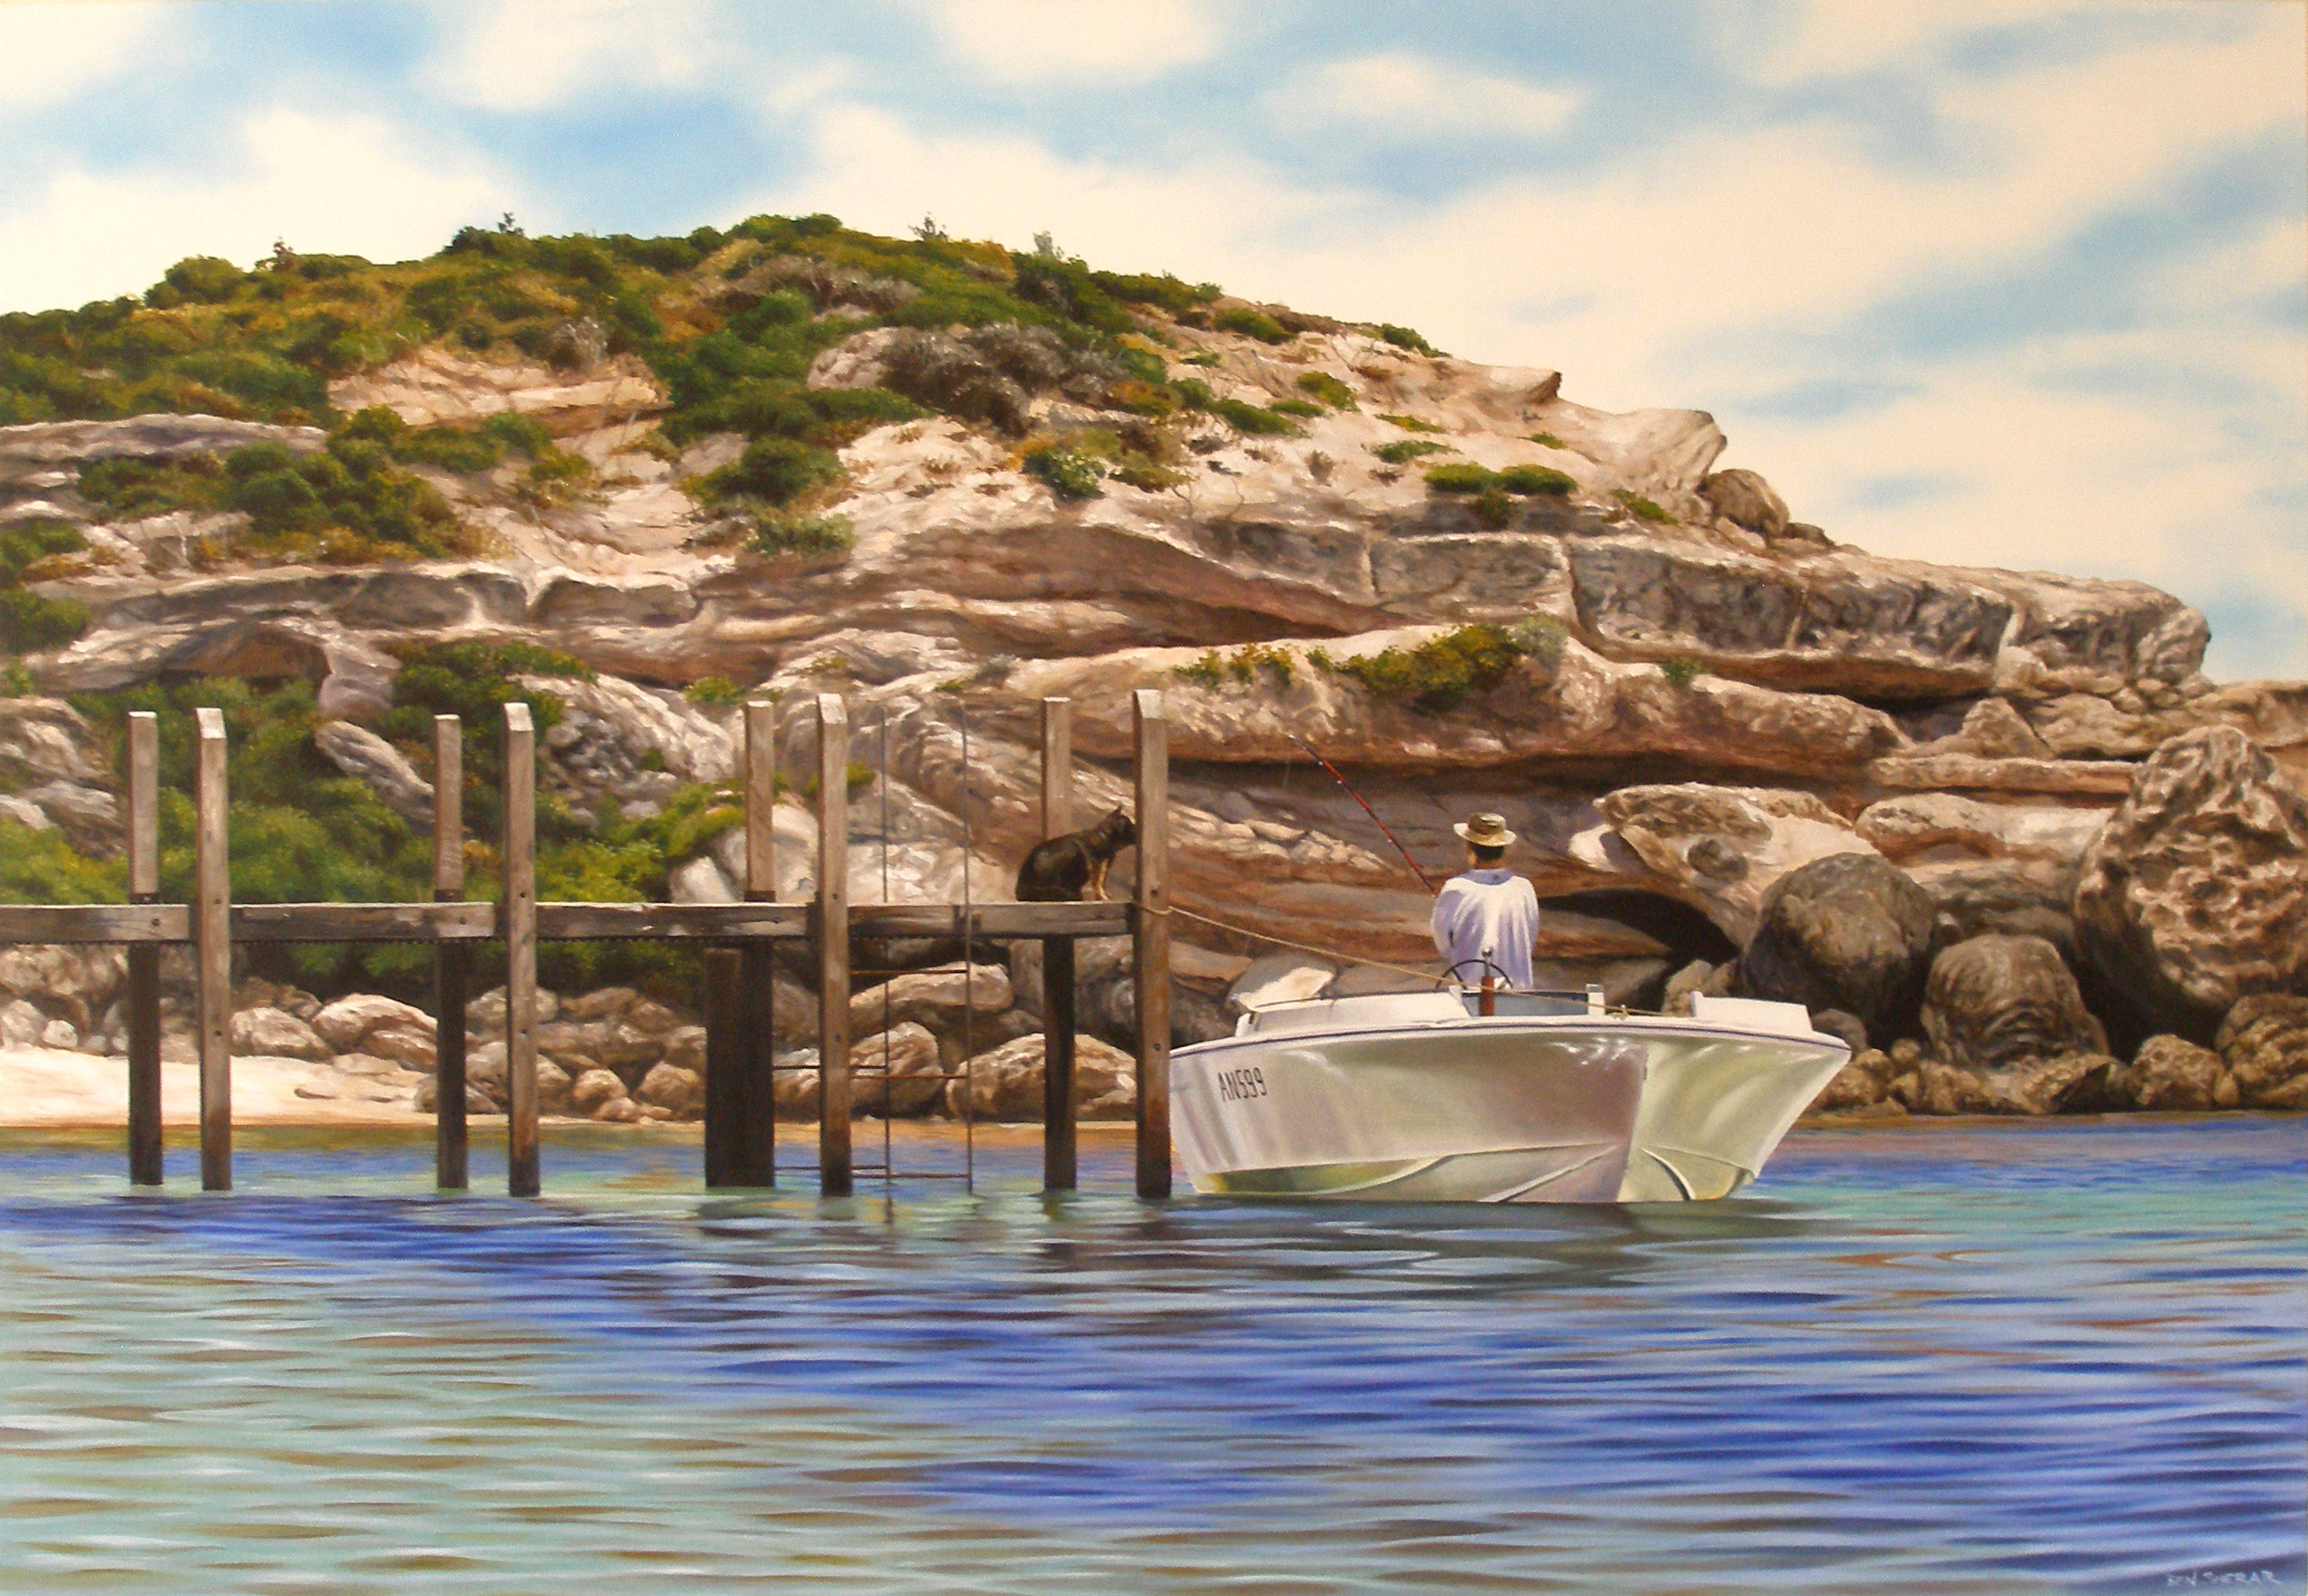 Original Oil Painting on linen by Ben Sherar of a boat moored at the jetty on Gnarabup beach, Margaret River